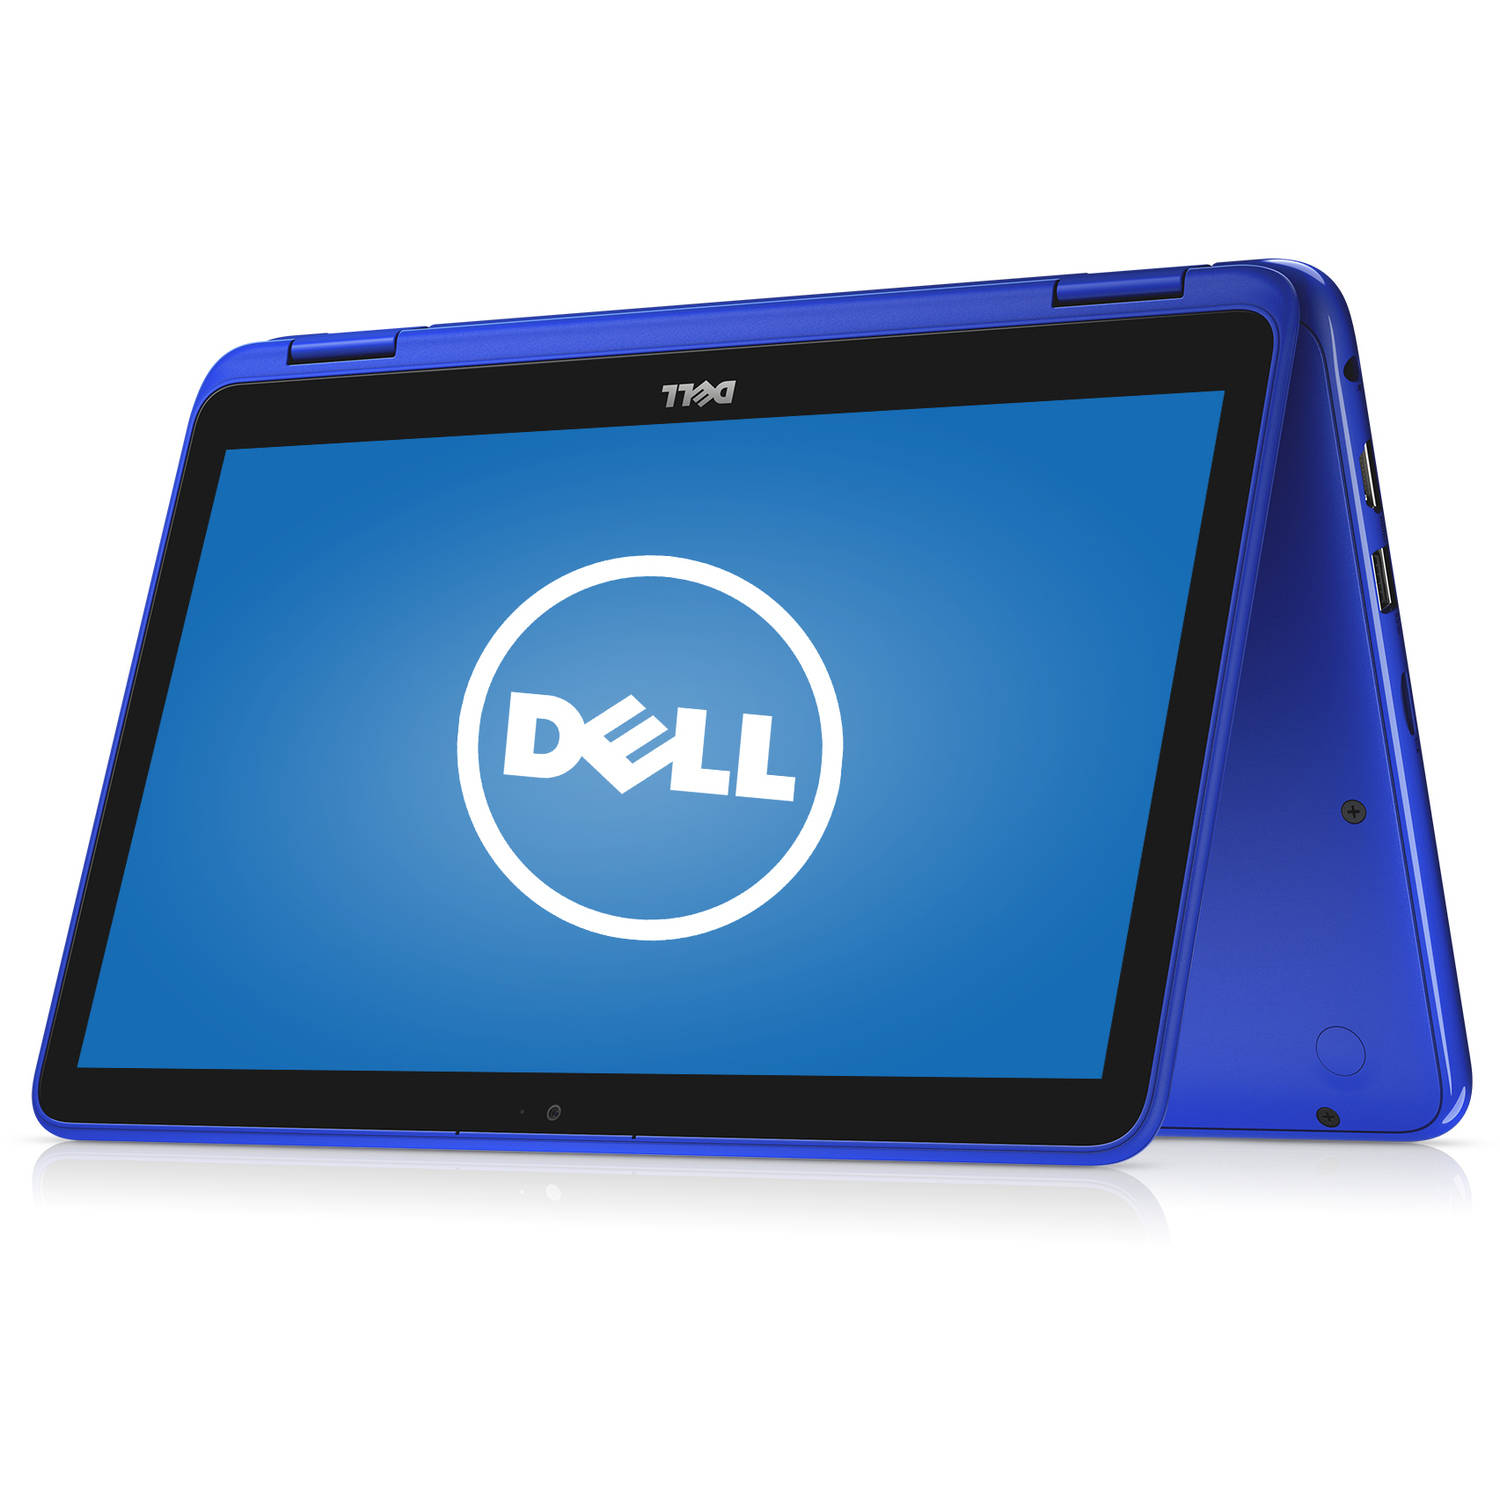 "Dell i3168-0028BLU Inspiron 11 3000 11.6"" Laptop, touch screen, 2-in-1, Windows 10 Home, Intel Celeron N3060 Processor, 2GB RAM, 32GB eMMC"